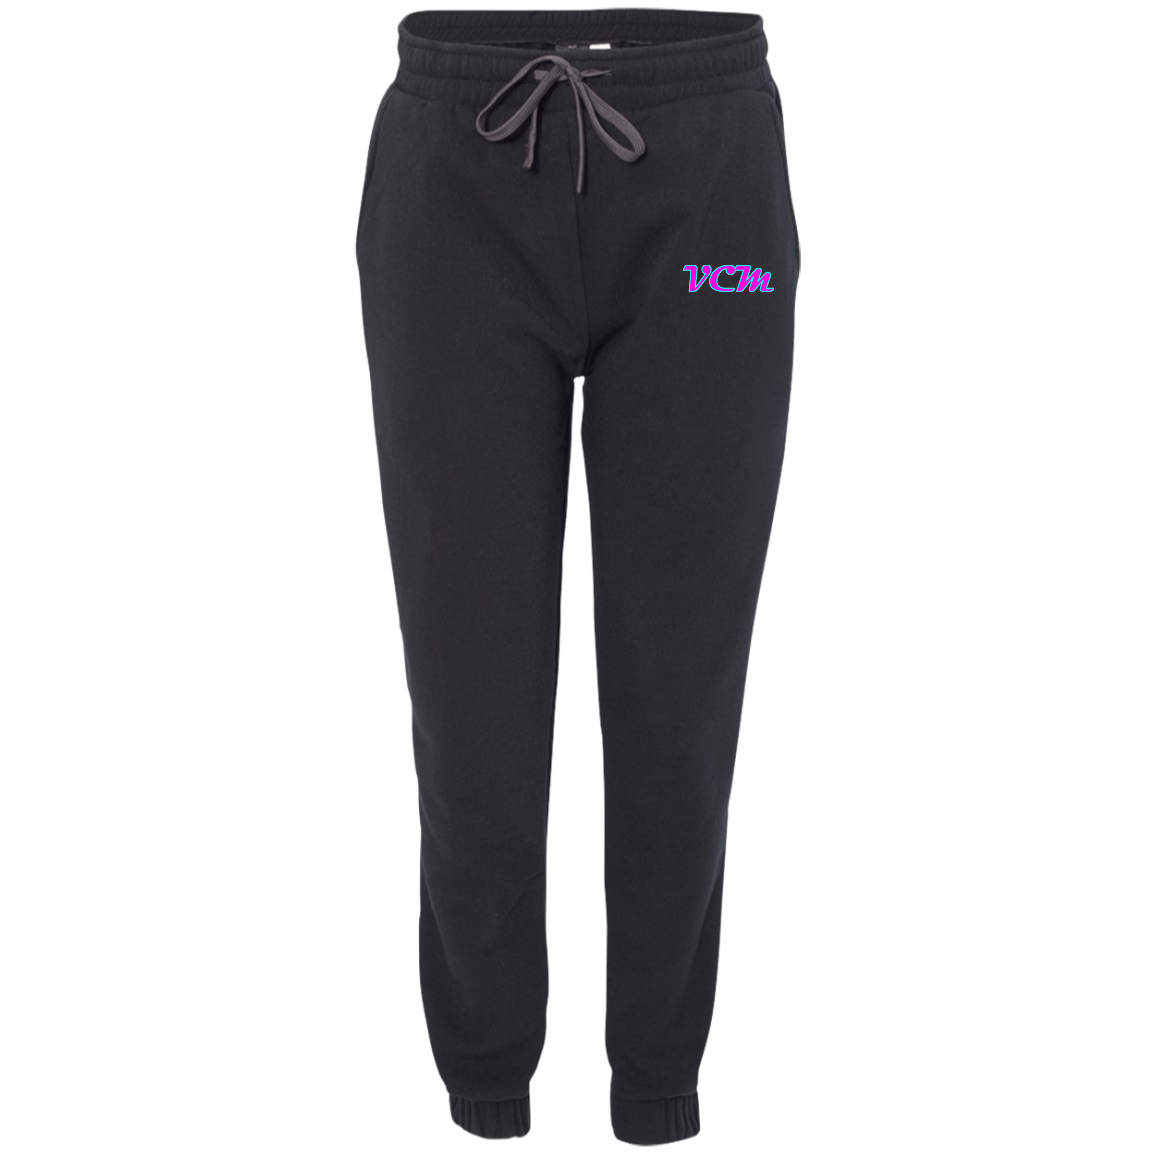 s-vcm FLEECE JOGGER PANTS